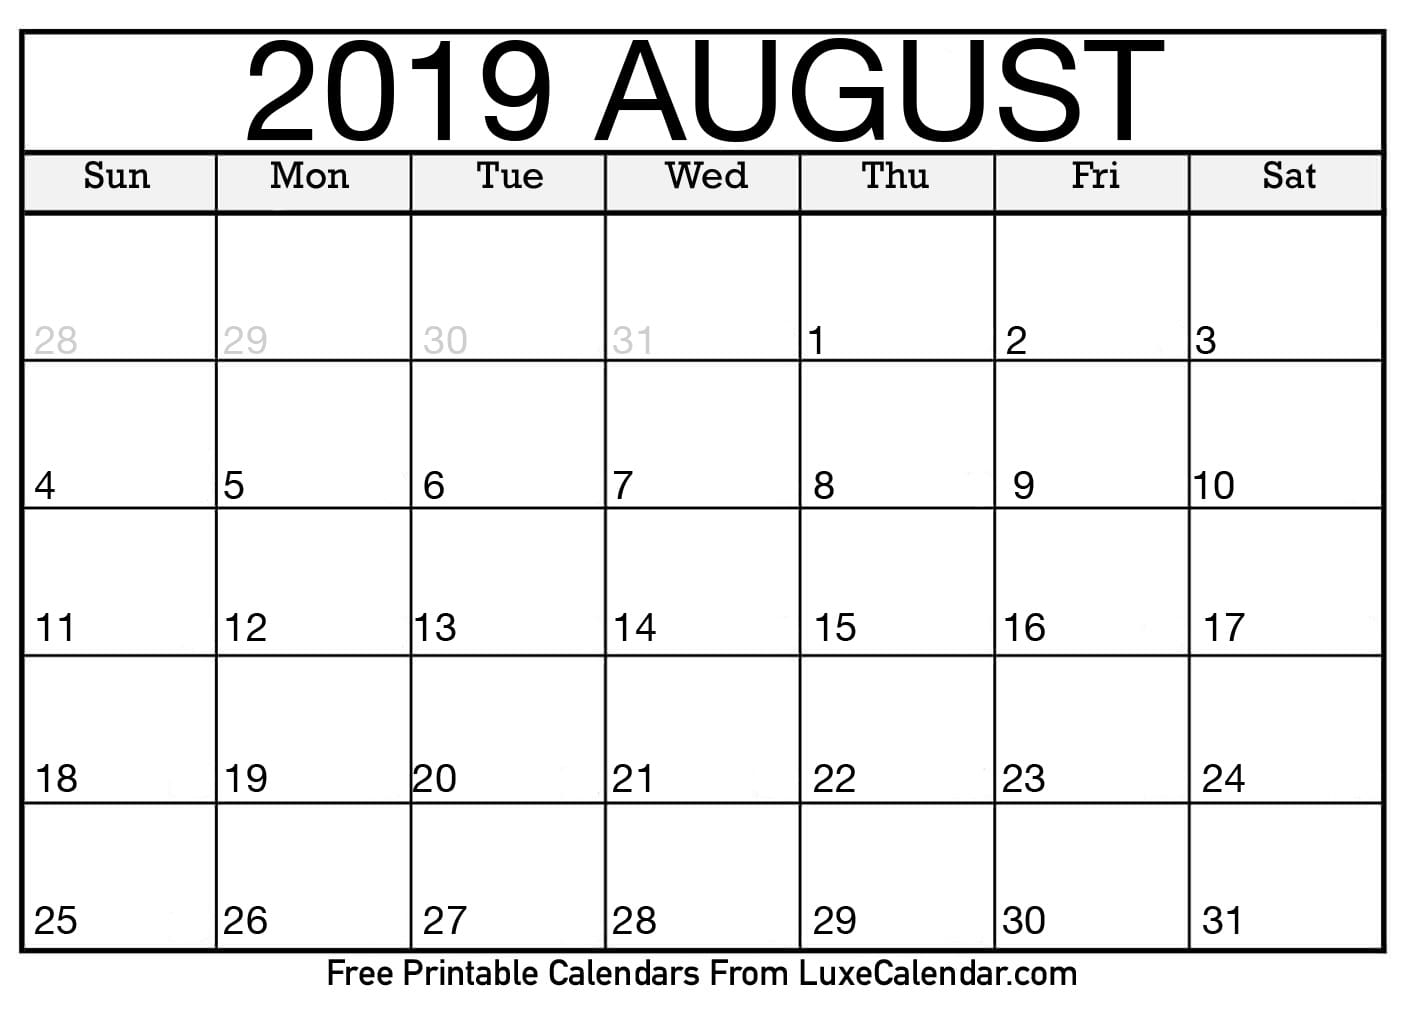 Blank August 2019 Calendar Template - Printable Calendar 2019| Blank inside August Printable Calendar Weekly Template